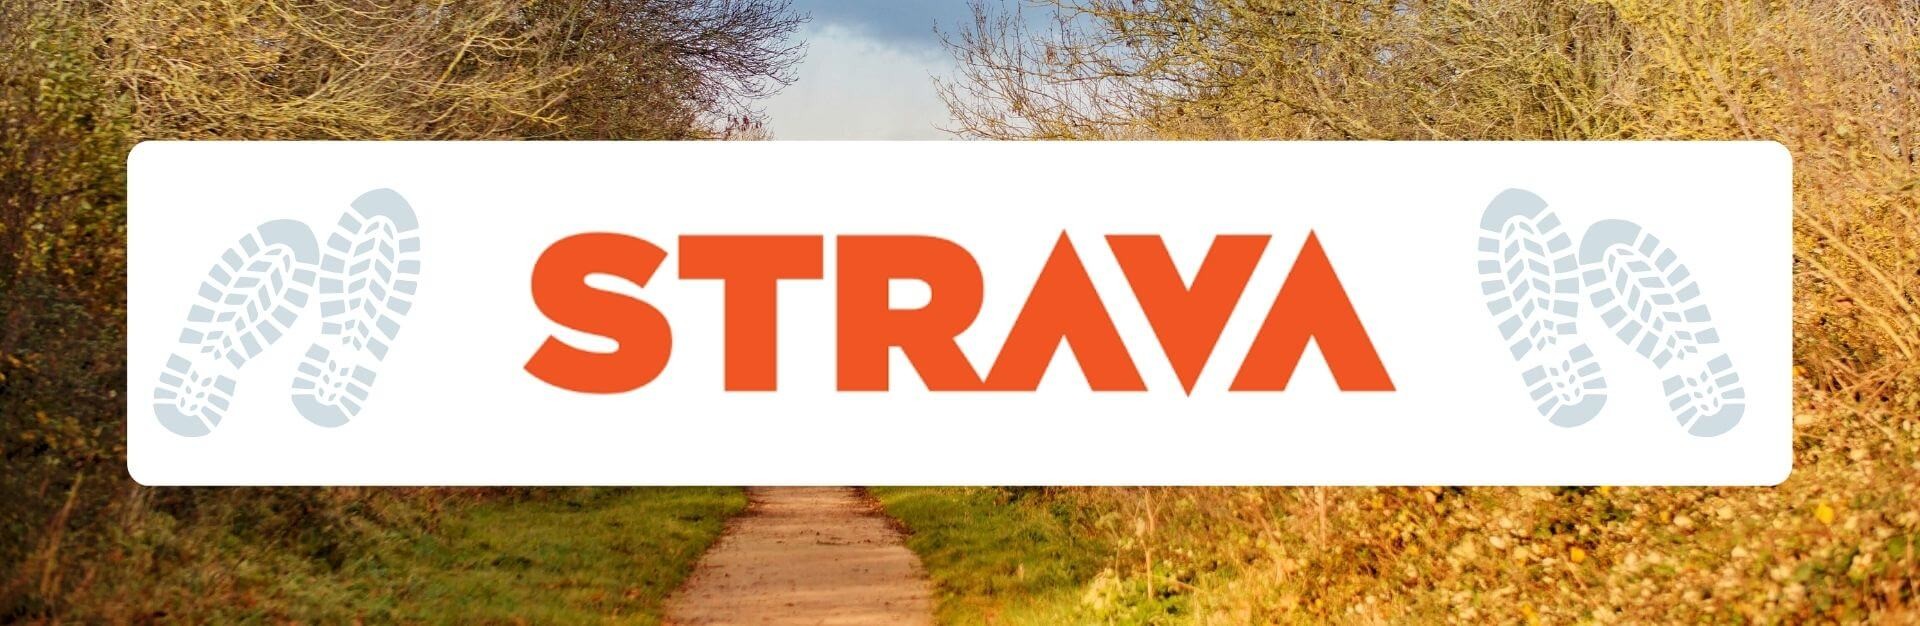 Strava logo against a background of a countryside view